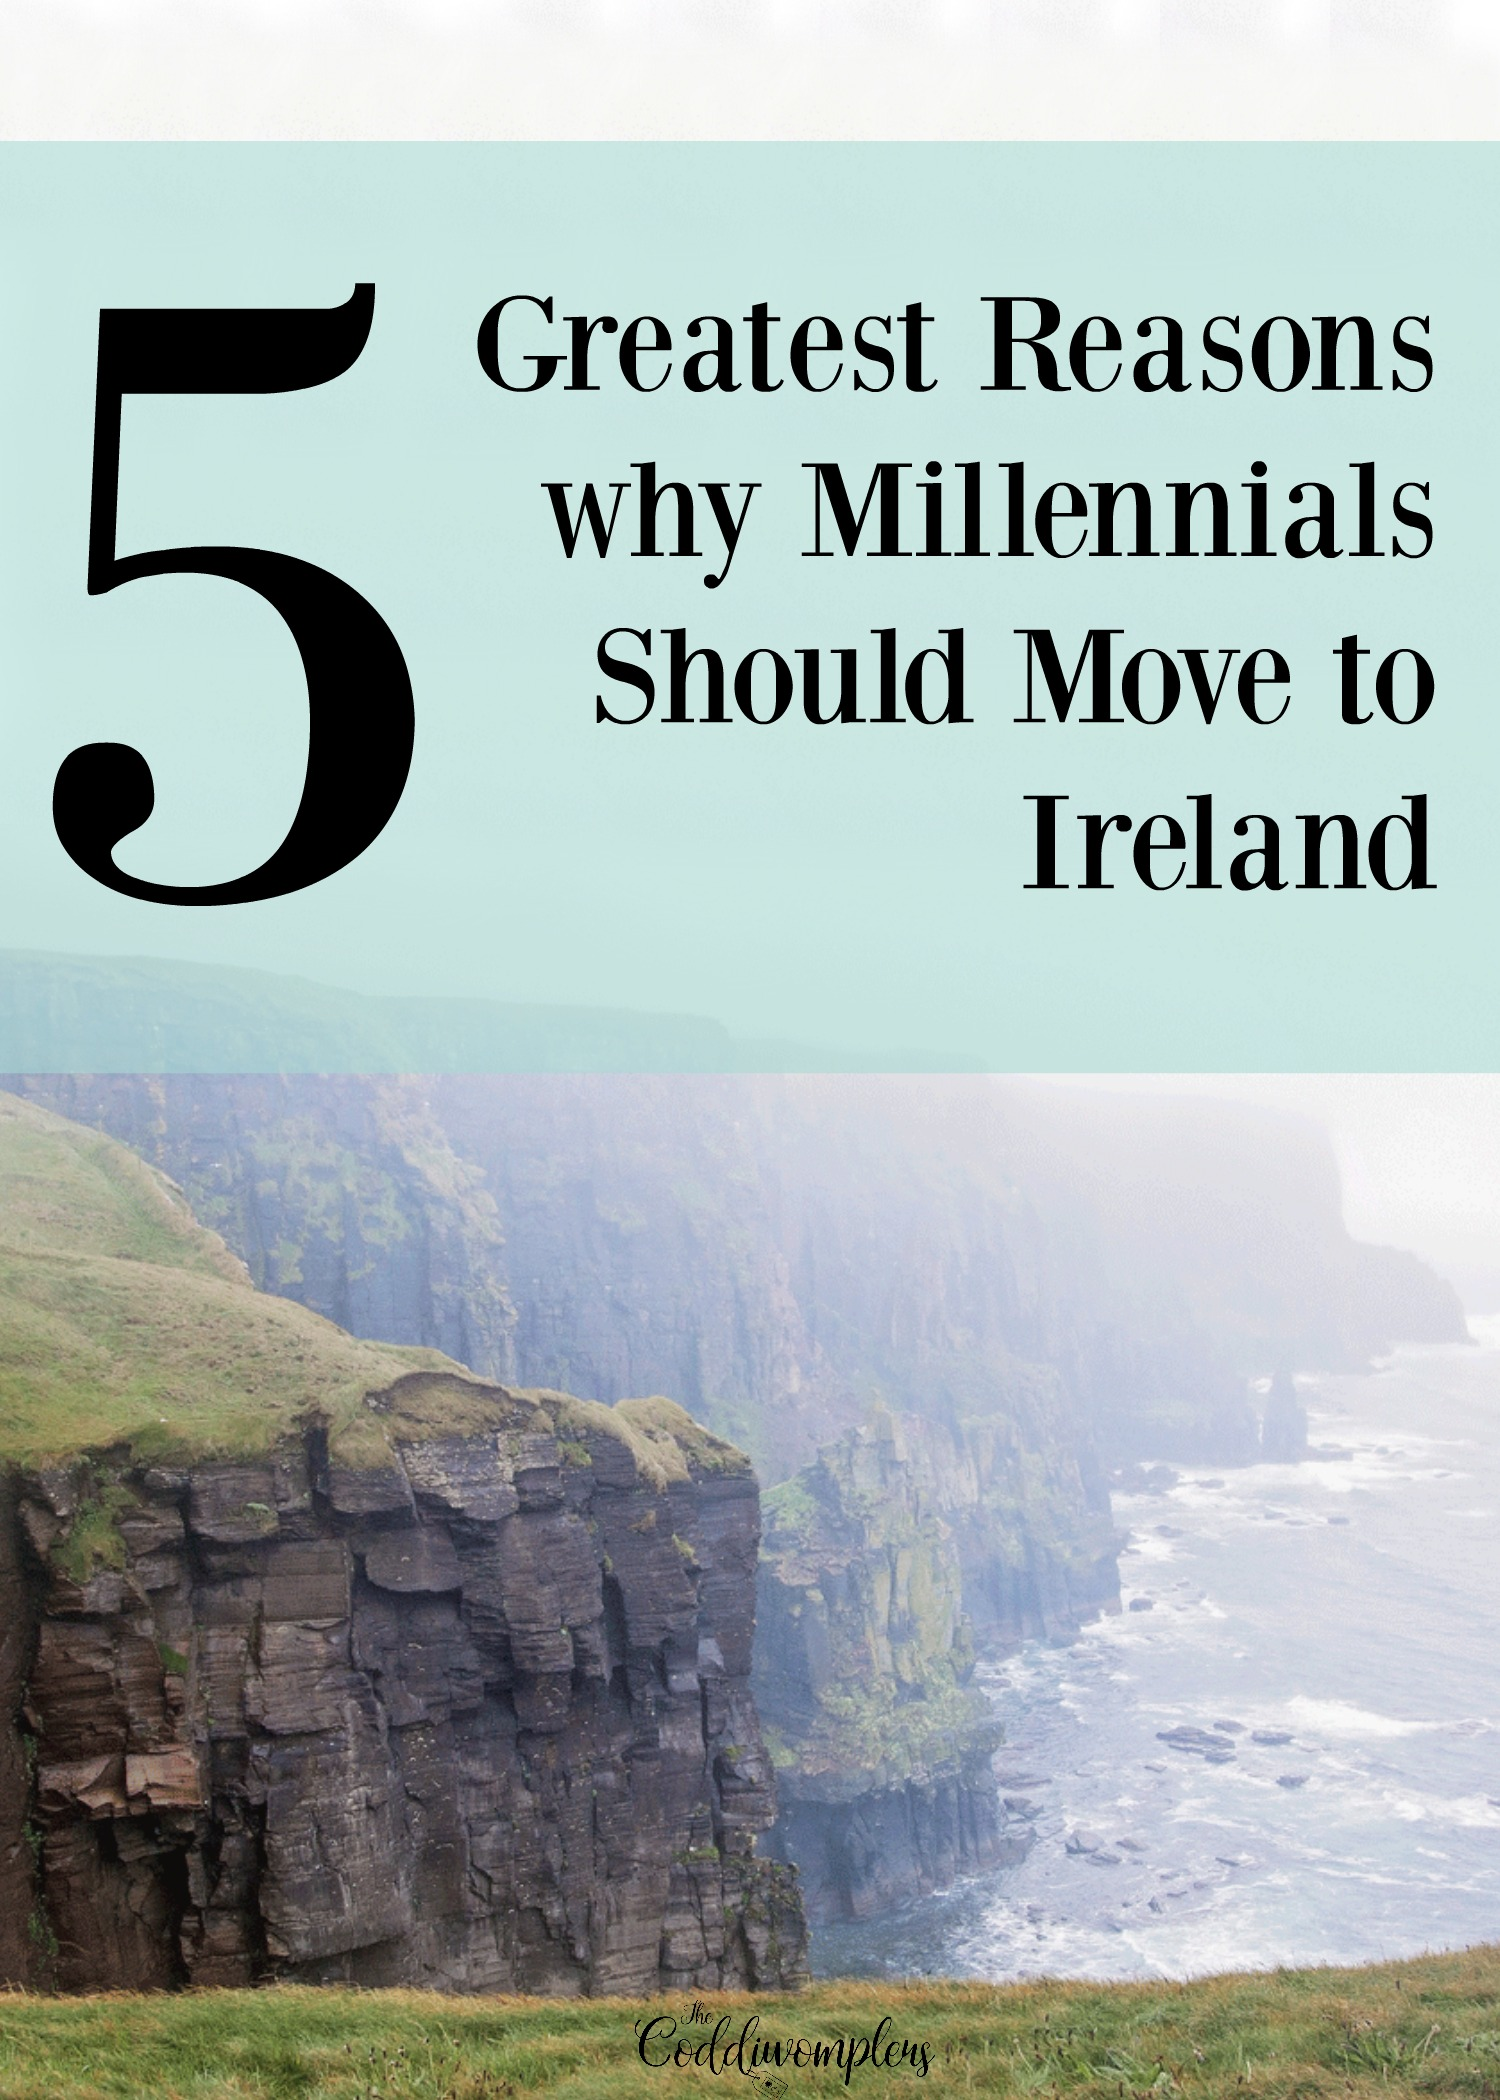 5 Greatest Reasons Why Millennials Should Move to Ireland